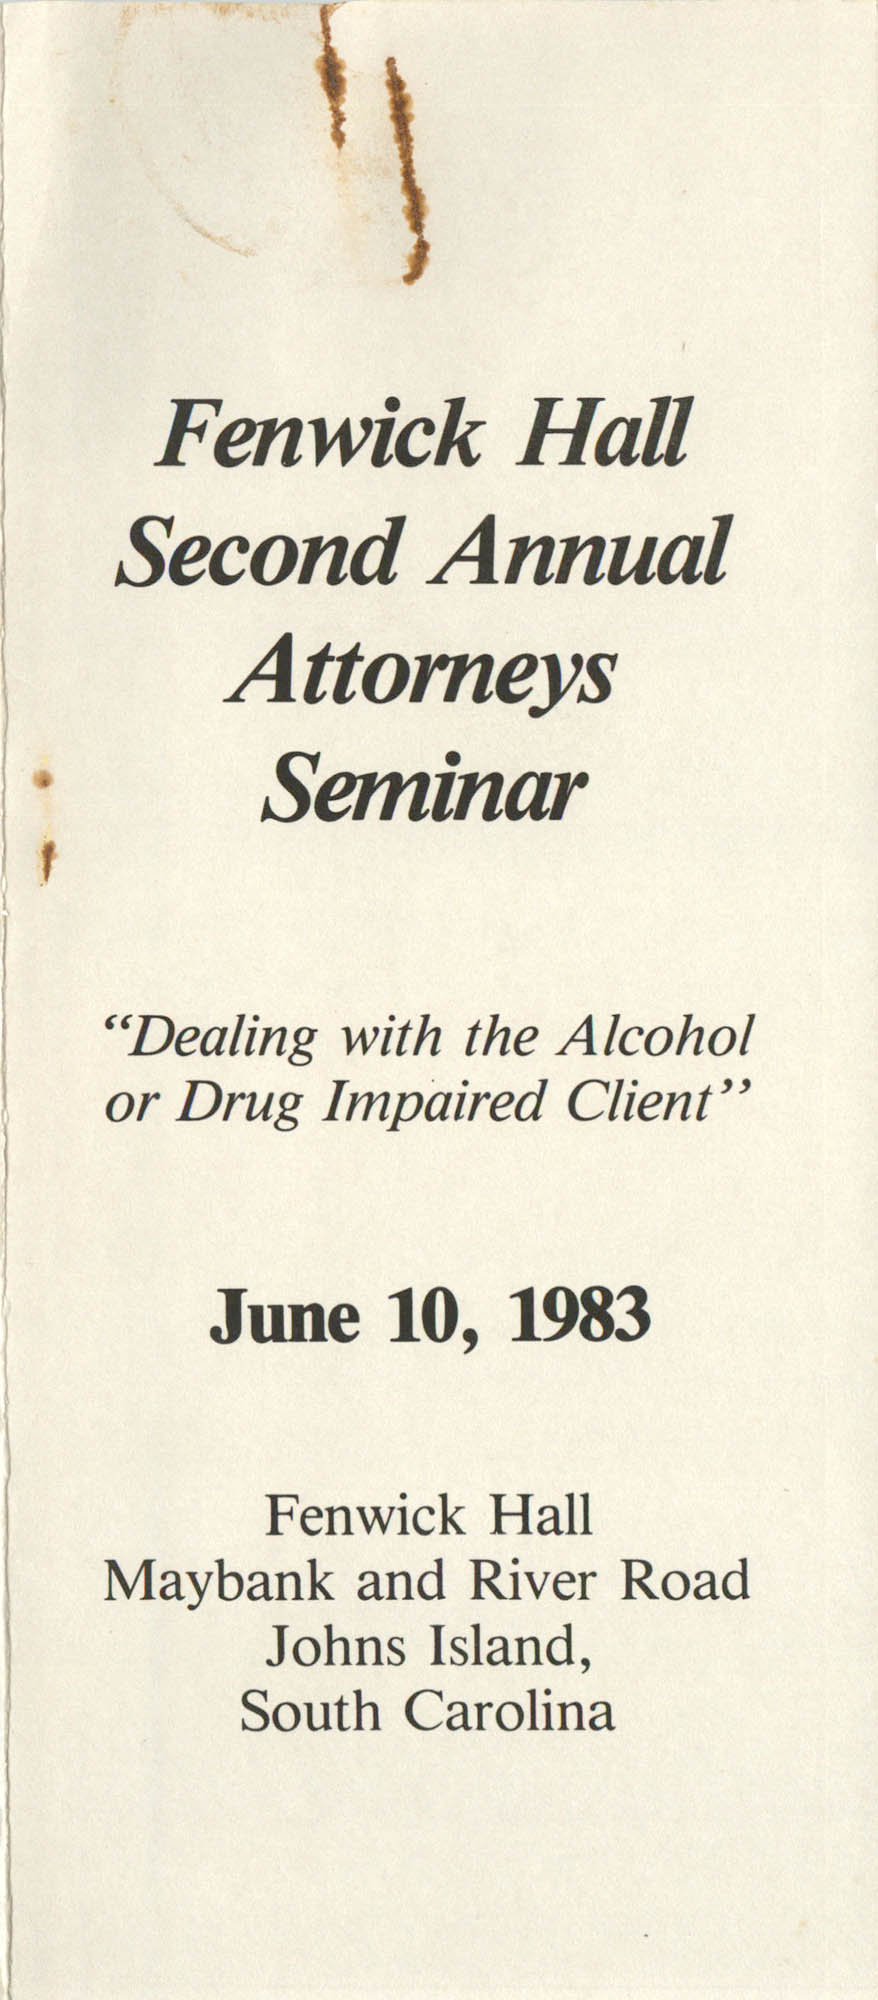 Fenwick Hall Second Annual Attorney Seminar, Pamphlet, June 10, 1983